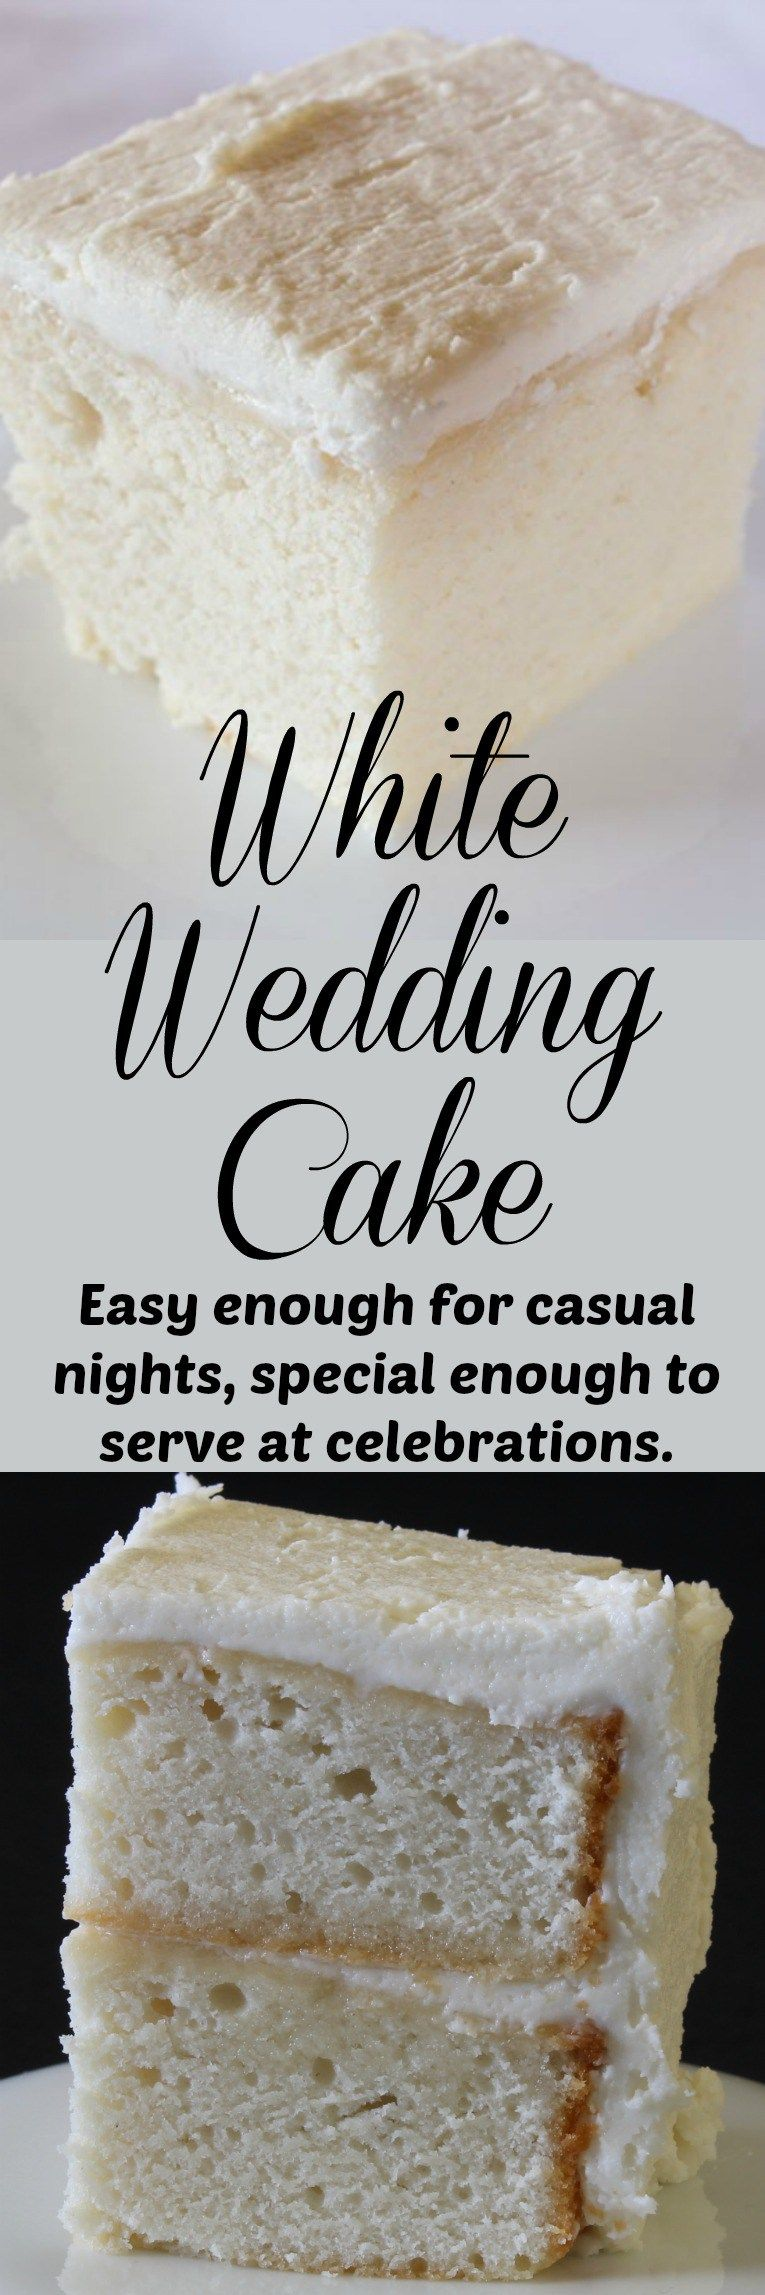 White Wedding Cake | Recipe | Pinterest | Wedding cake simple, White ...